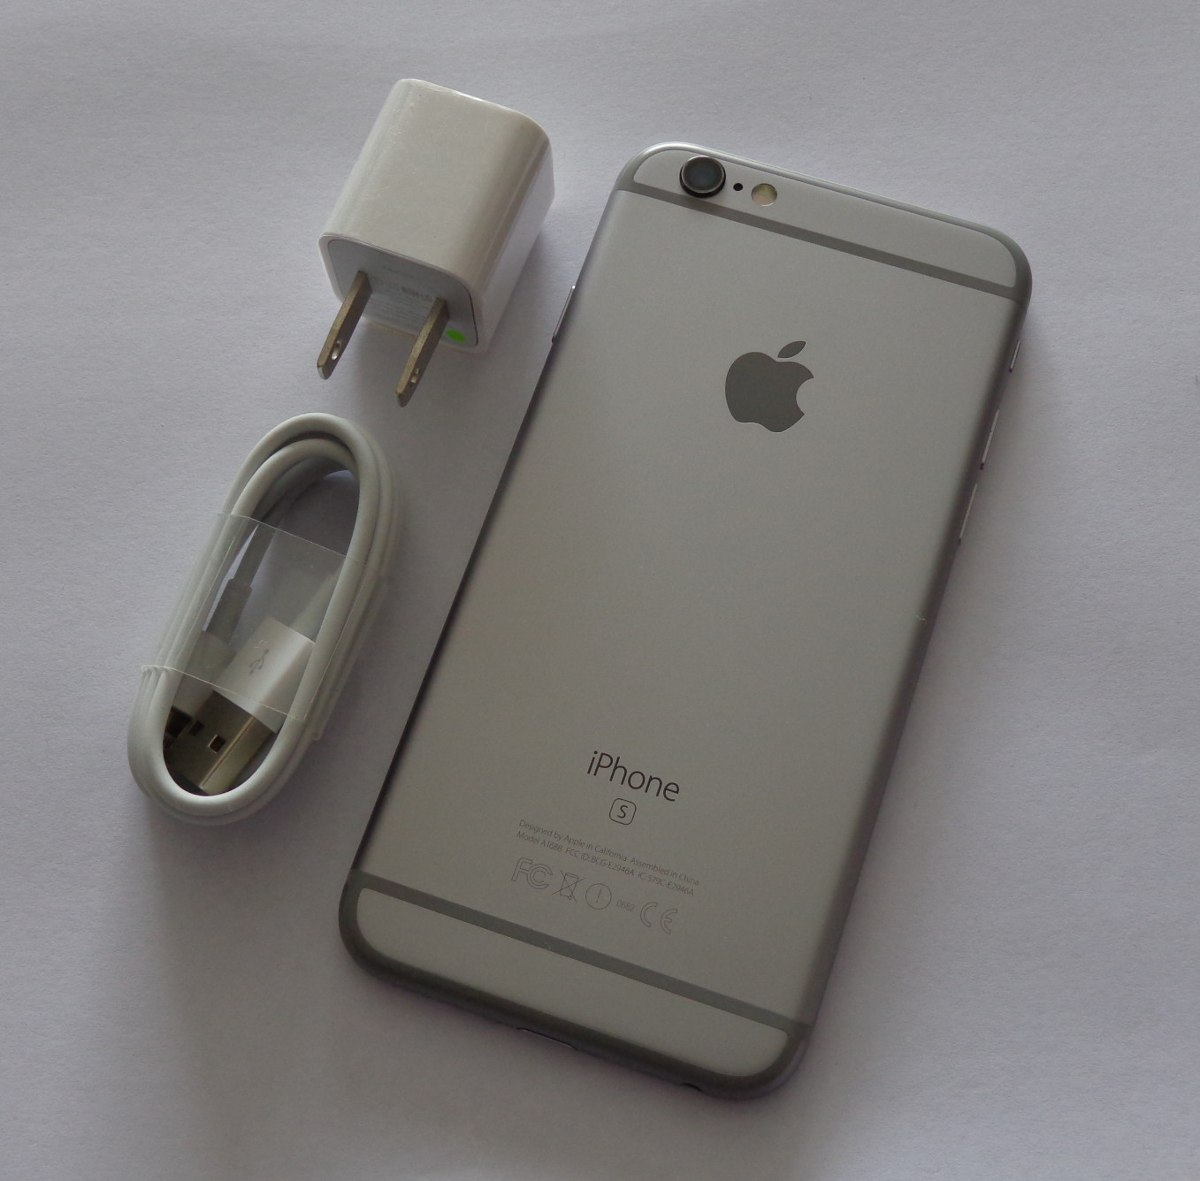 Iphone 6s Precio Libre Apple Iphone 6s De 64gb Gris Espacial Libre Todo Operador